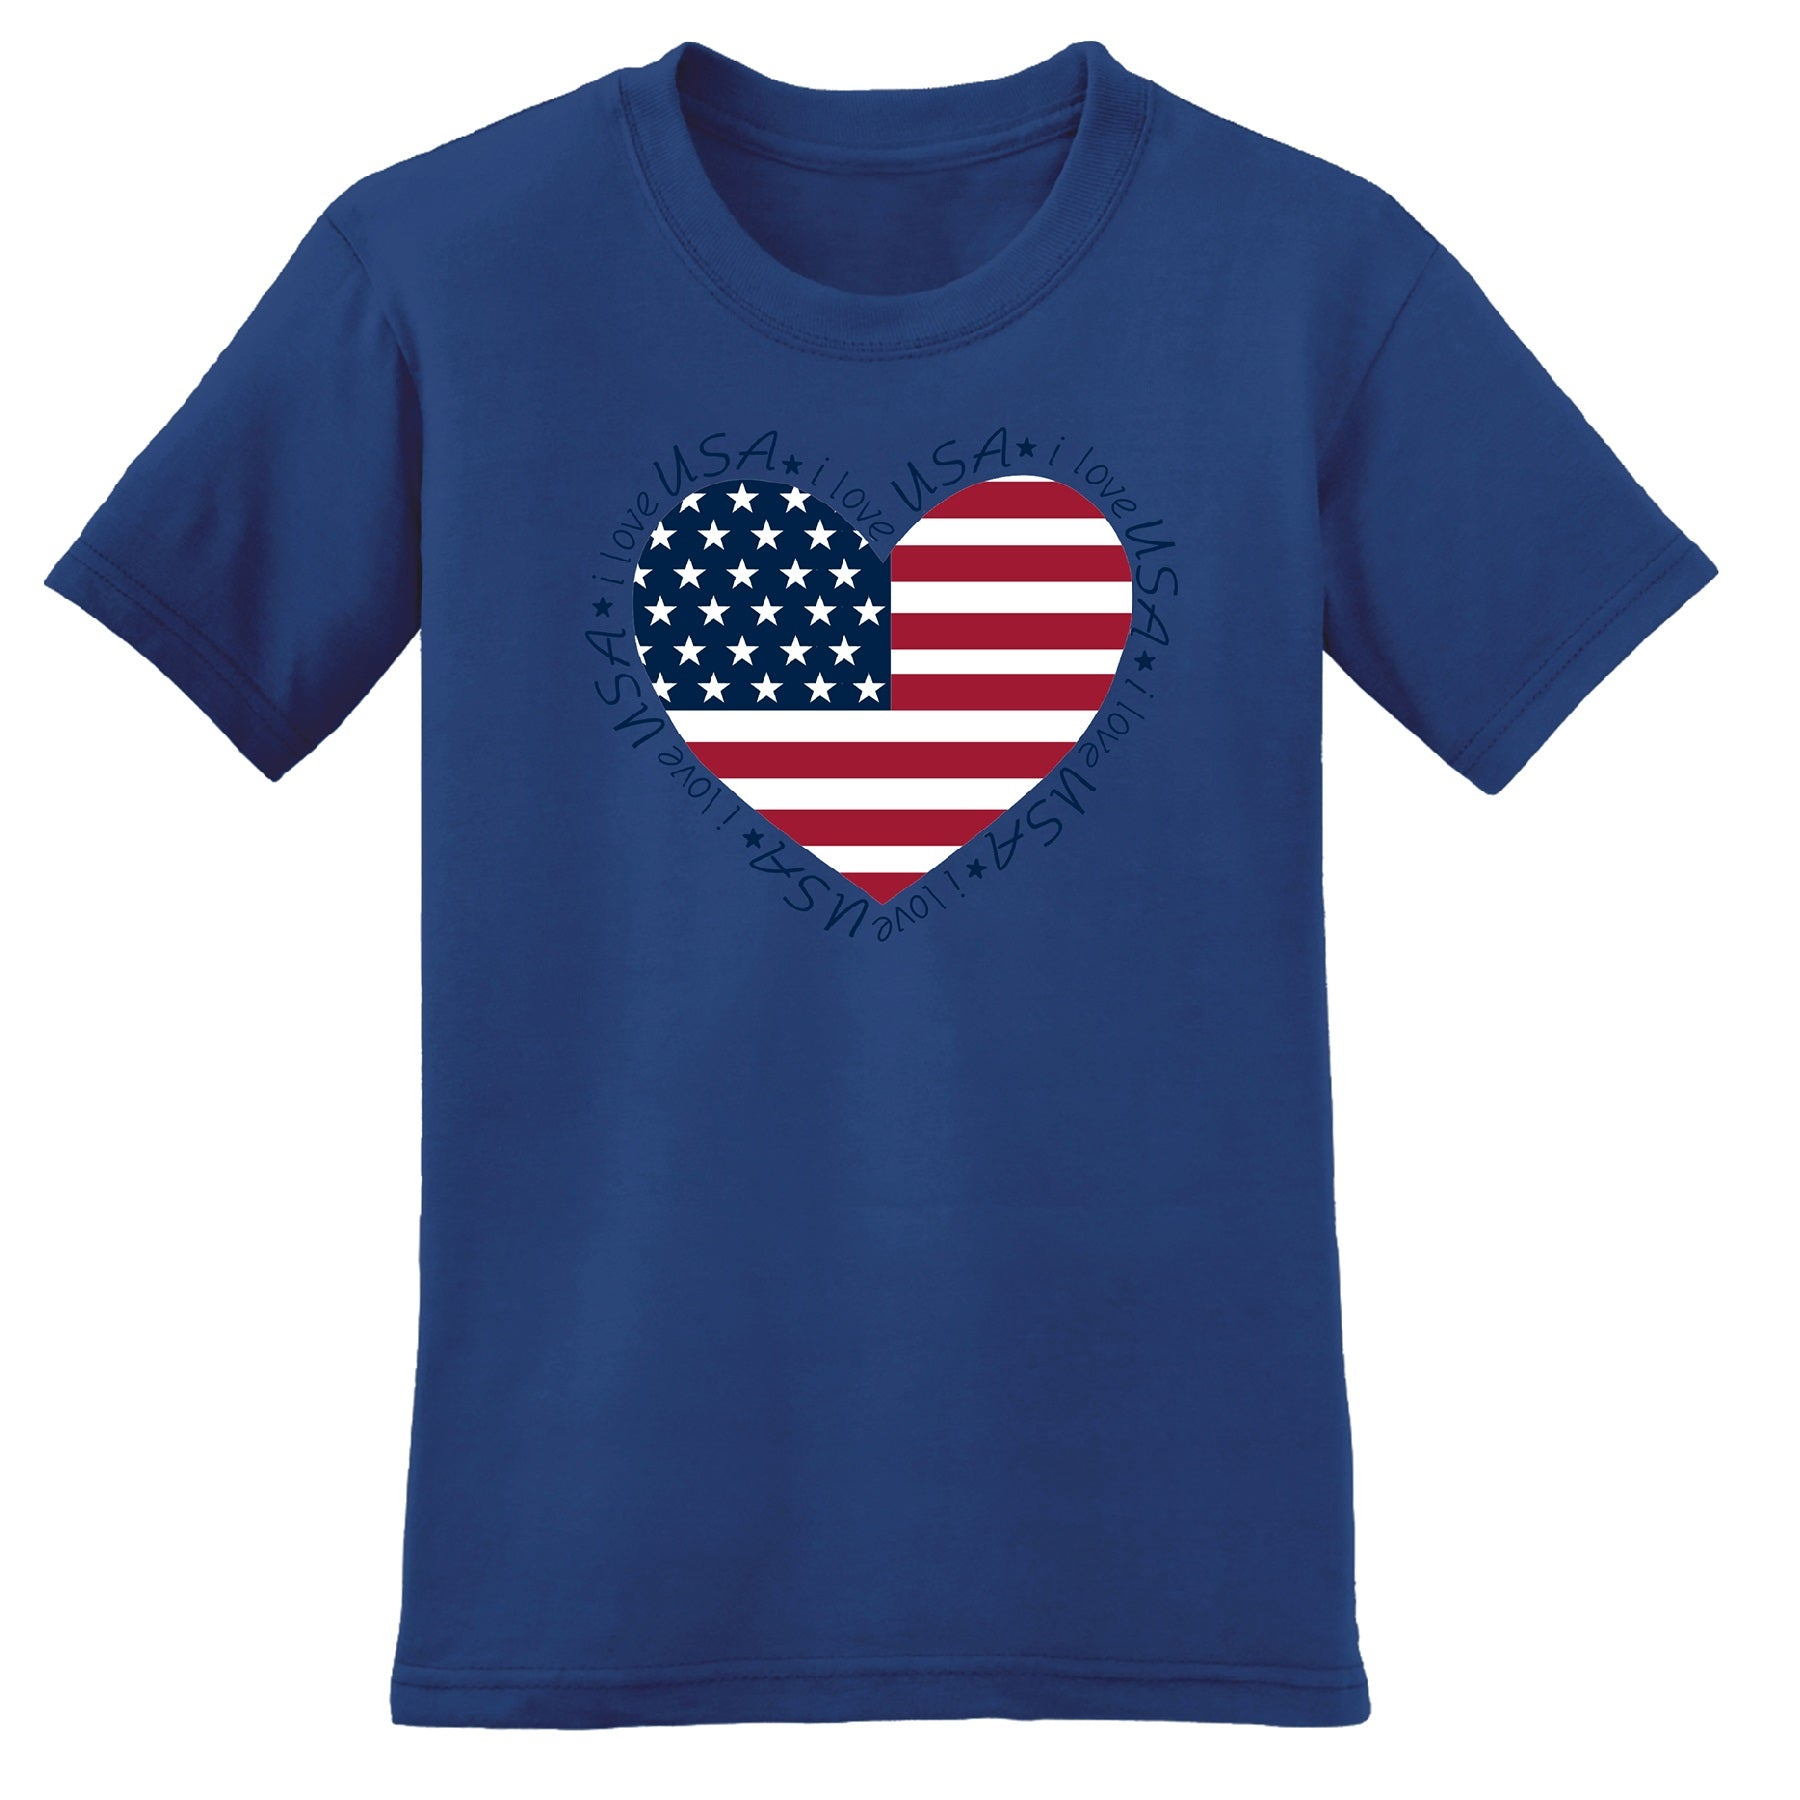 USA Heart Women T-Shirt - theflagshirt